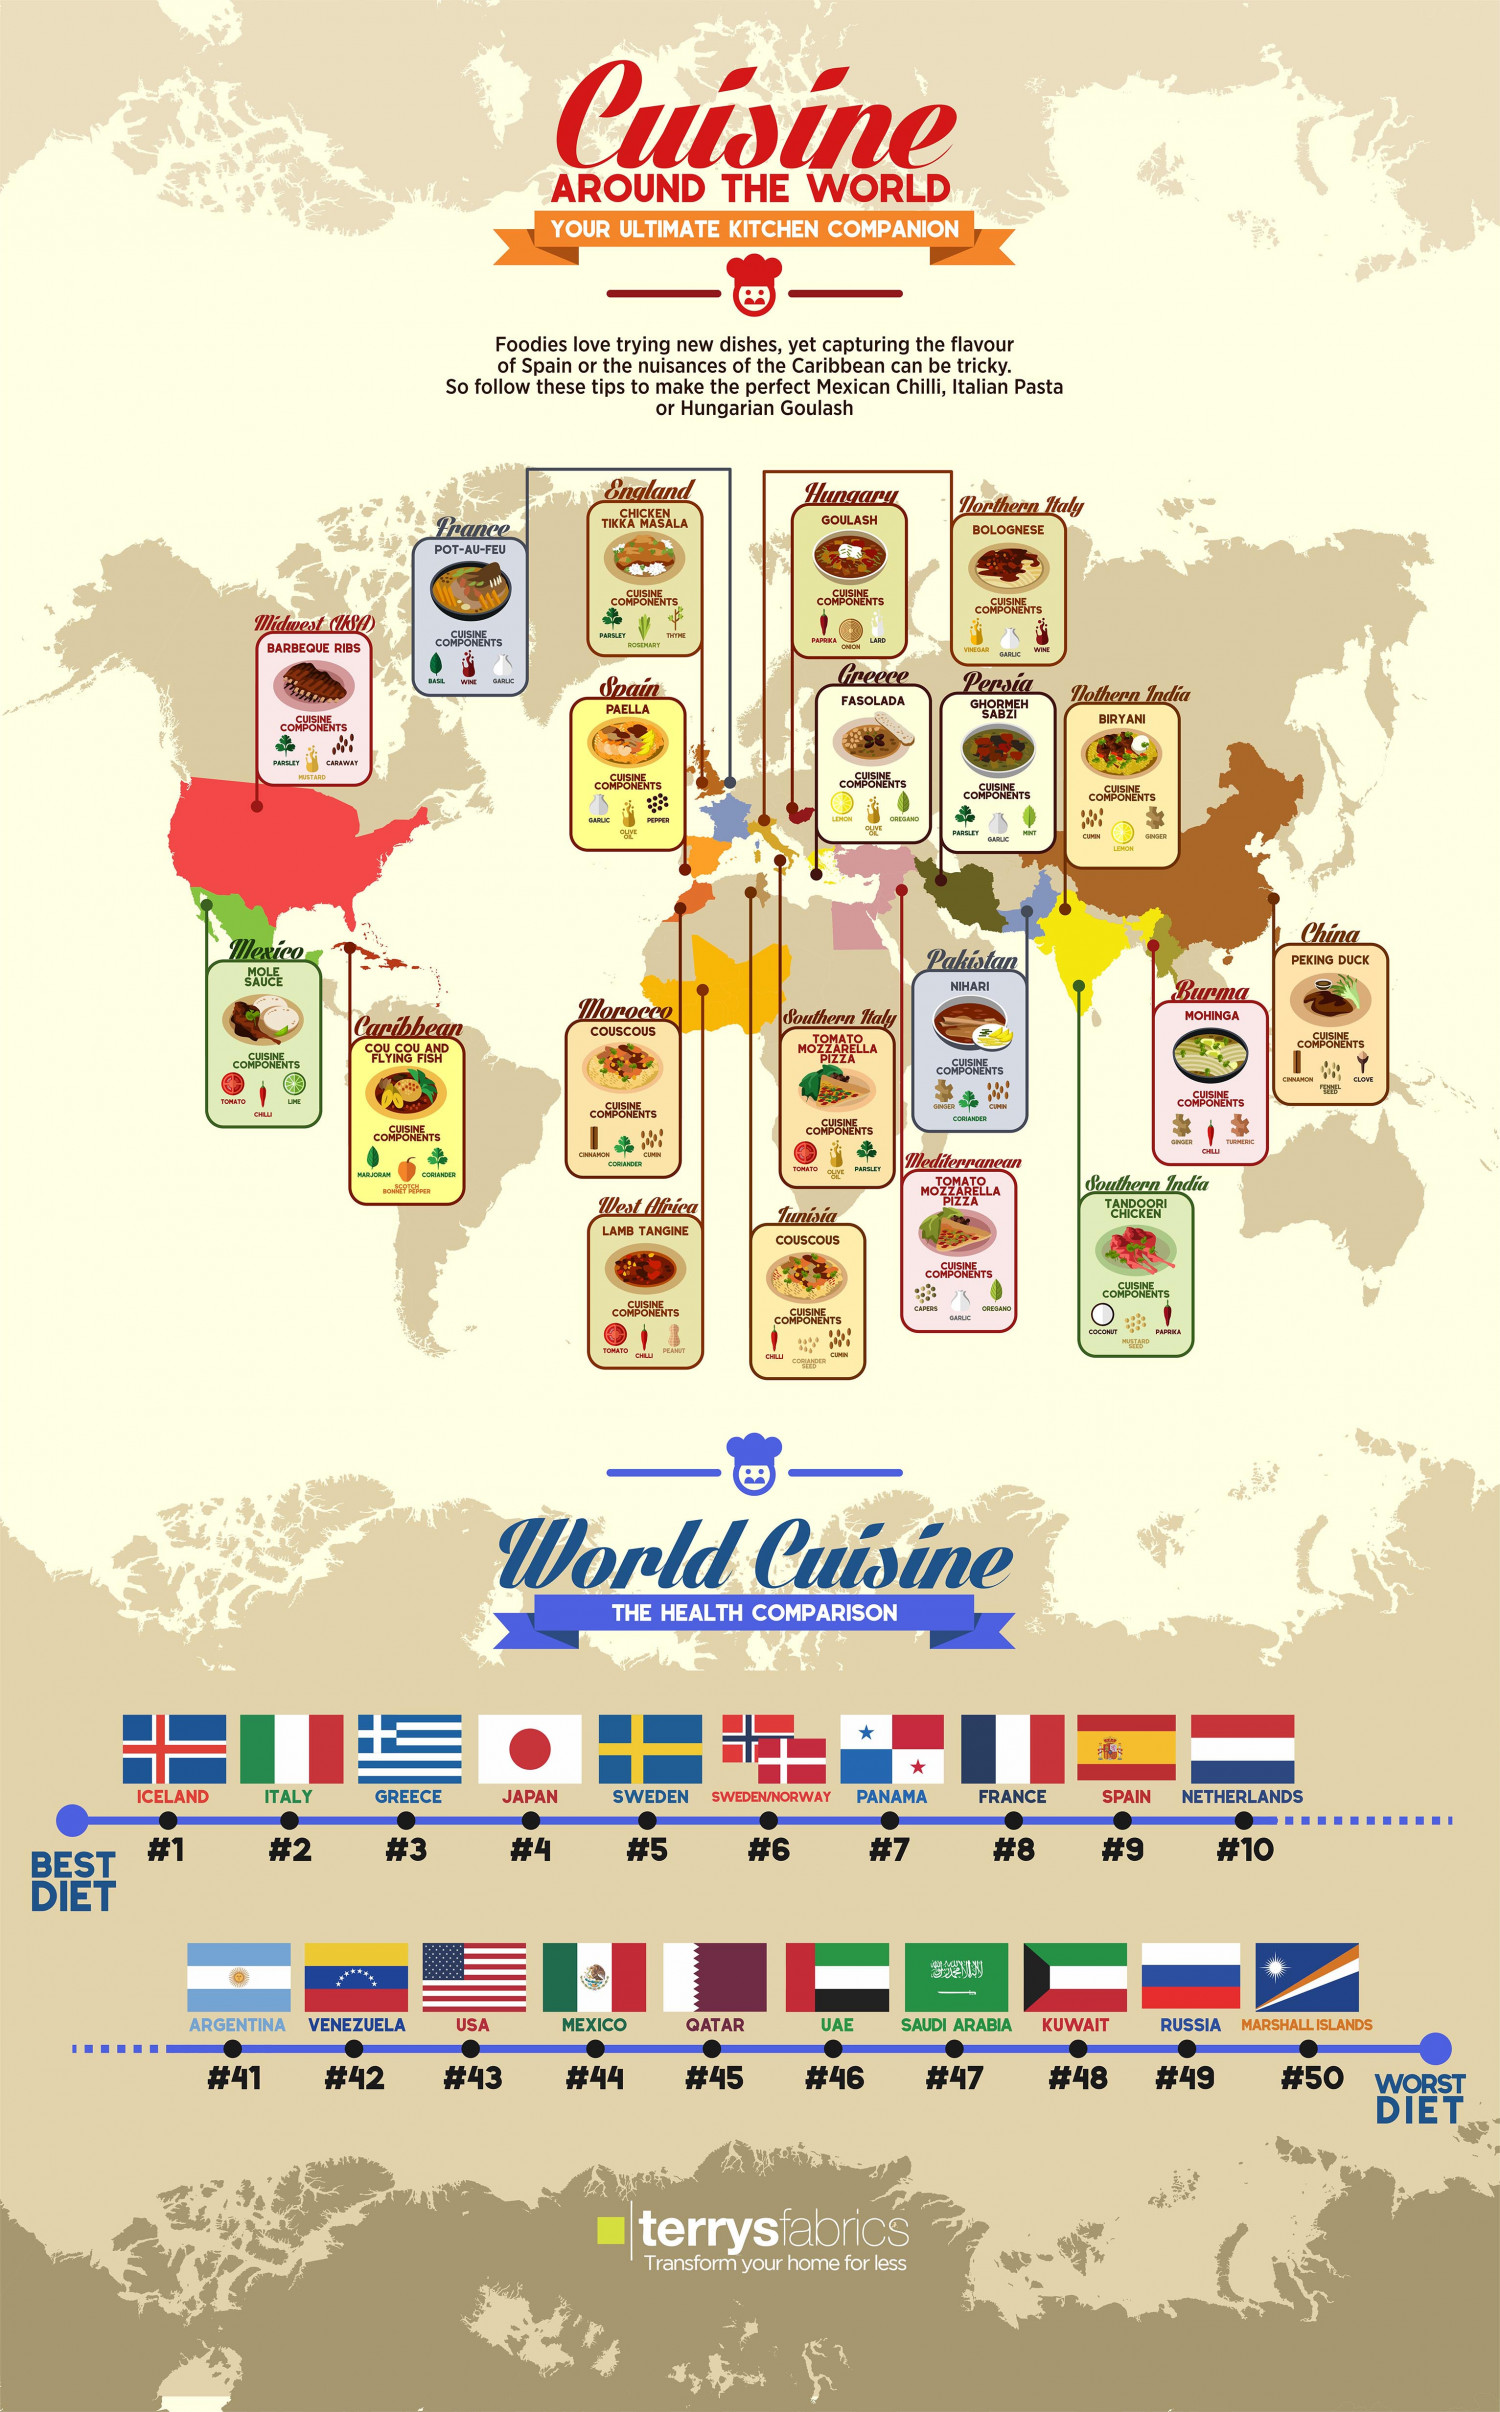 Cuisine Around The World